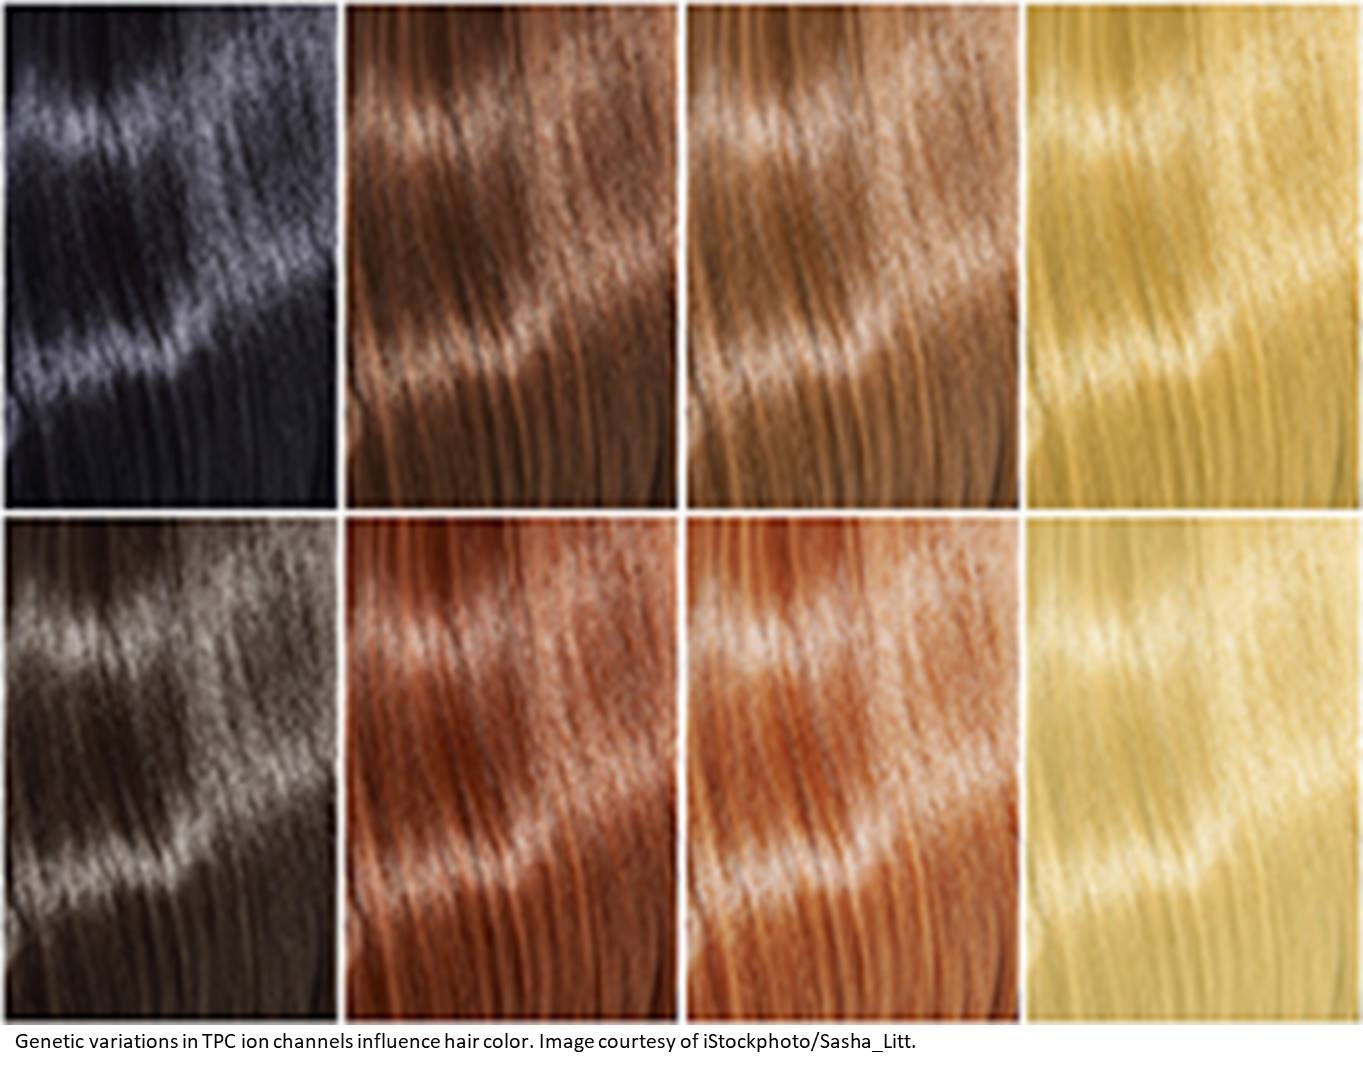 Genetic variations in ion channels influence human hair color